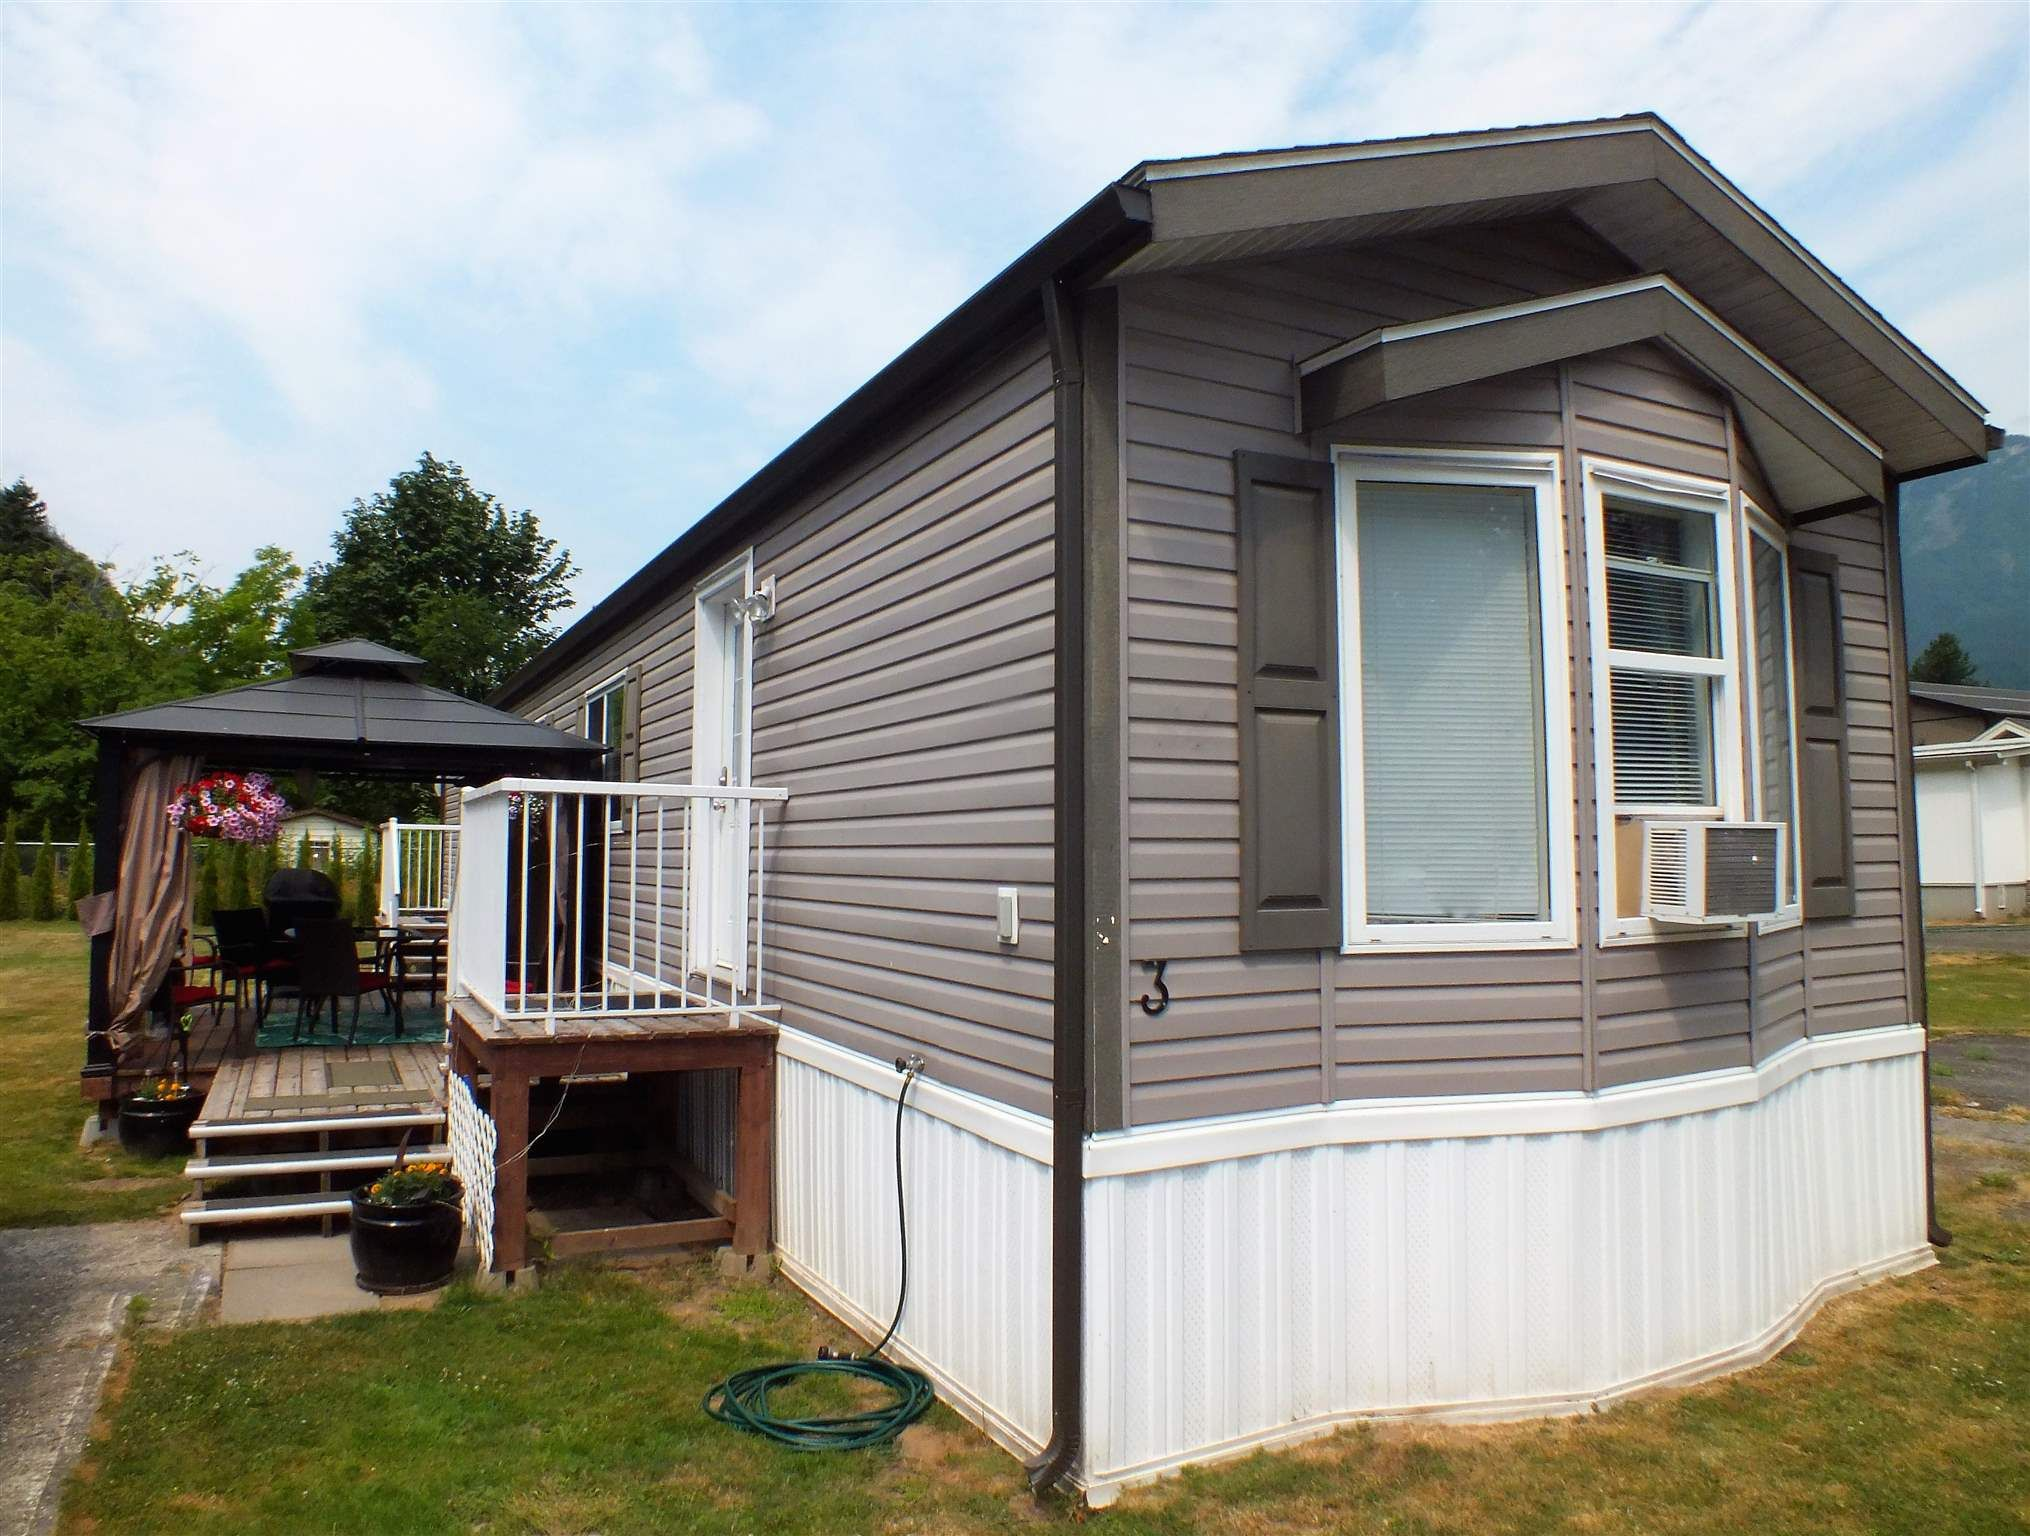 """Main Photo: 3 62010 FLOOD HOPE Road in Hope: Hope Silver Creek Manufactured Home for sale in """"WINDMILL MHP"""" : MLS®# R2600579"""